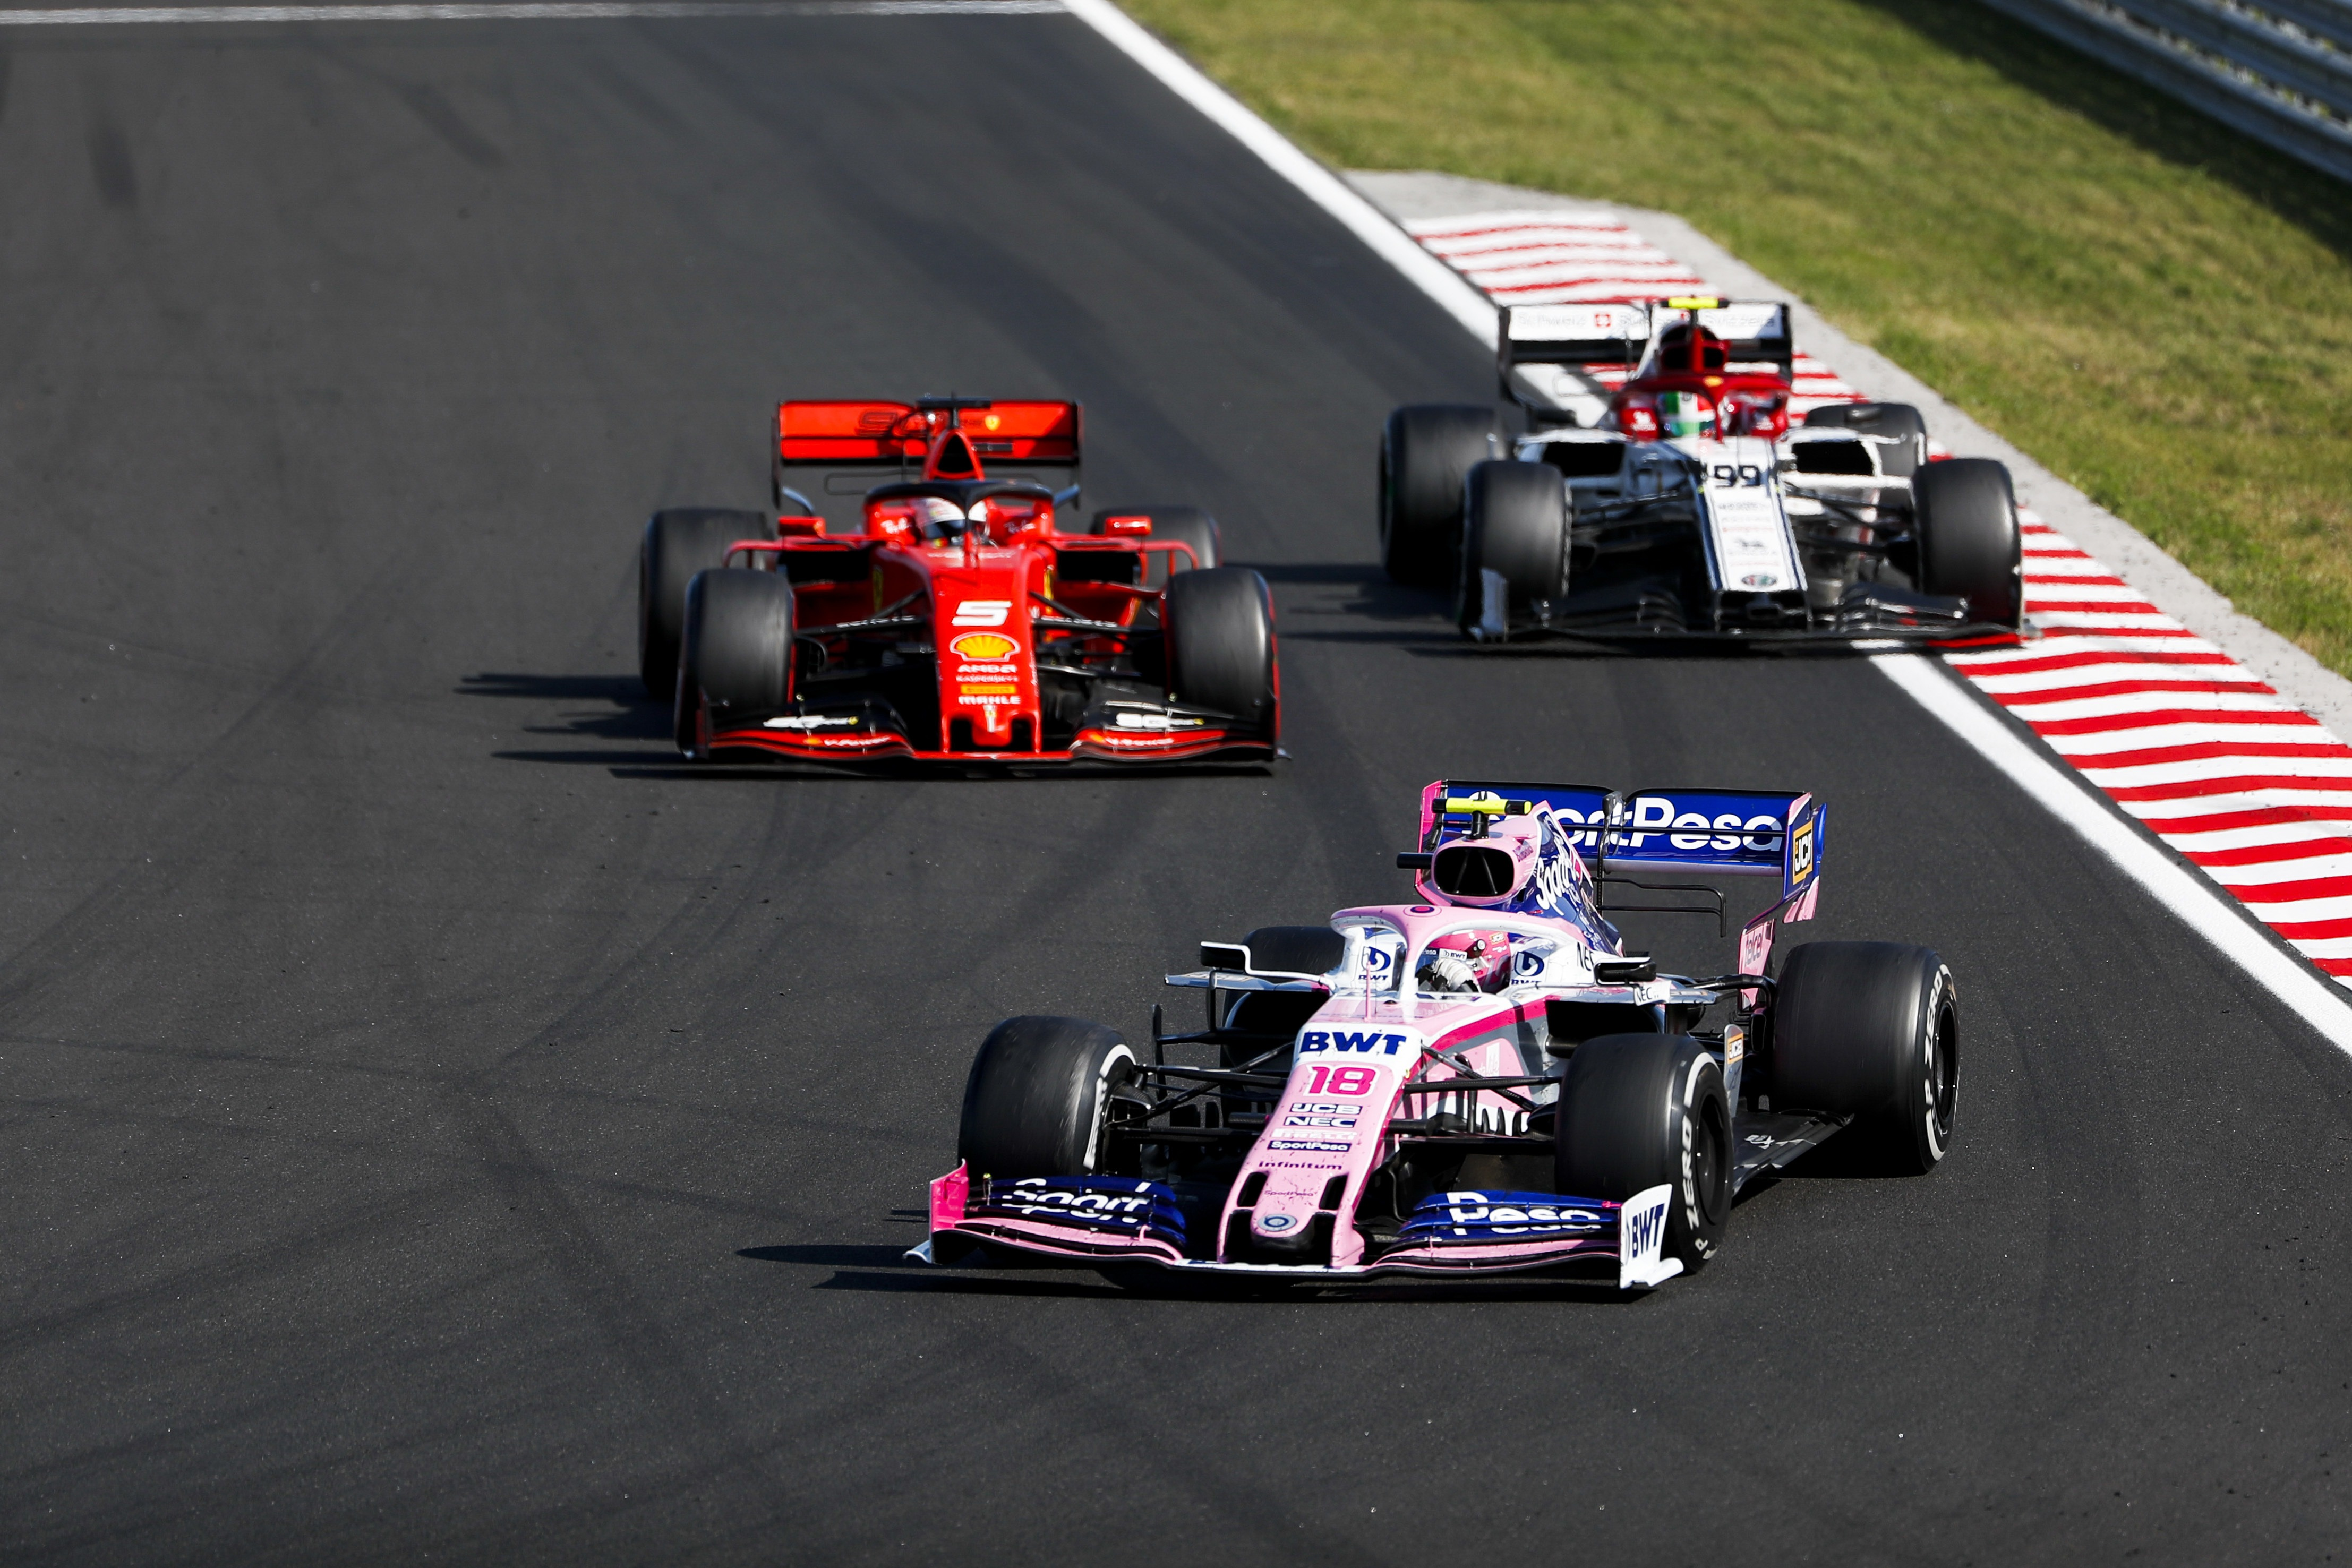 Is Stroll skilled enough to take on Vettel?